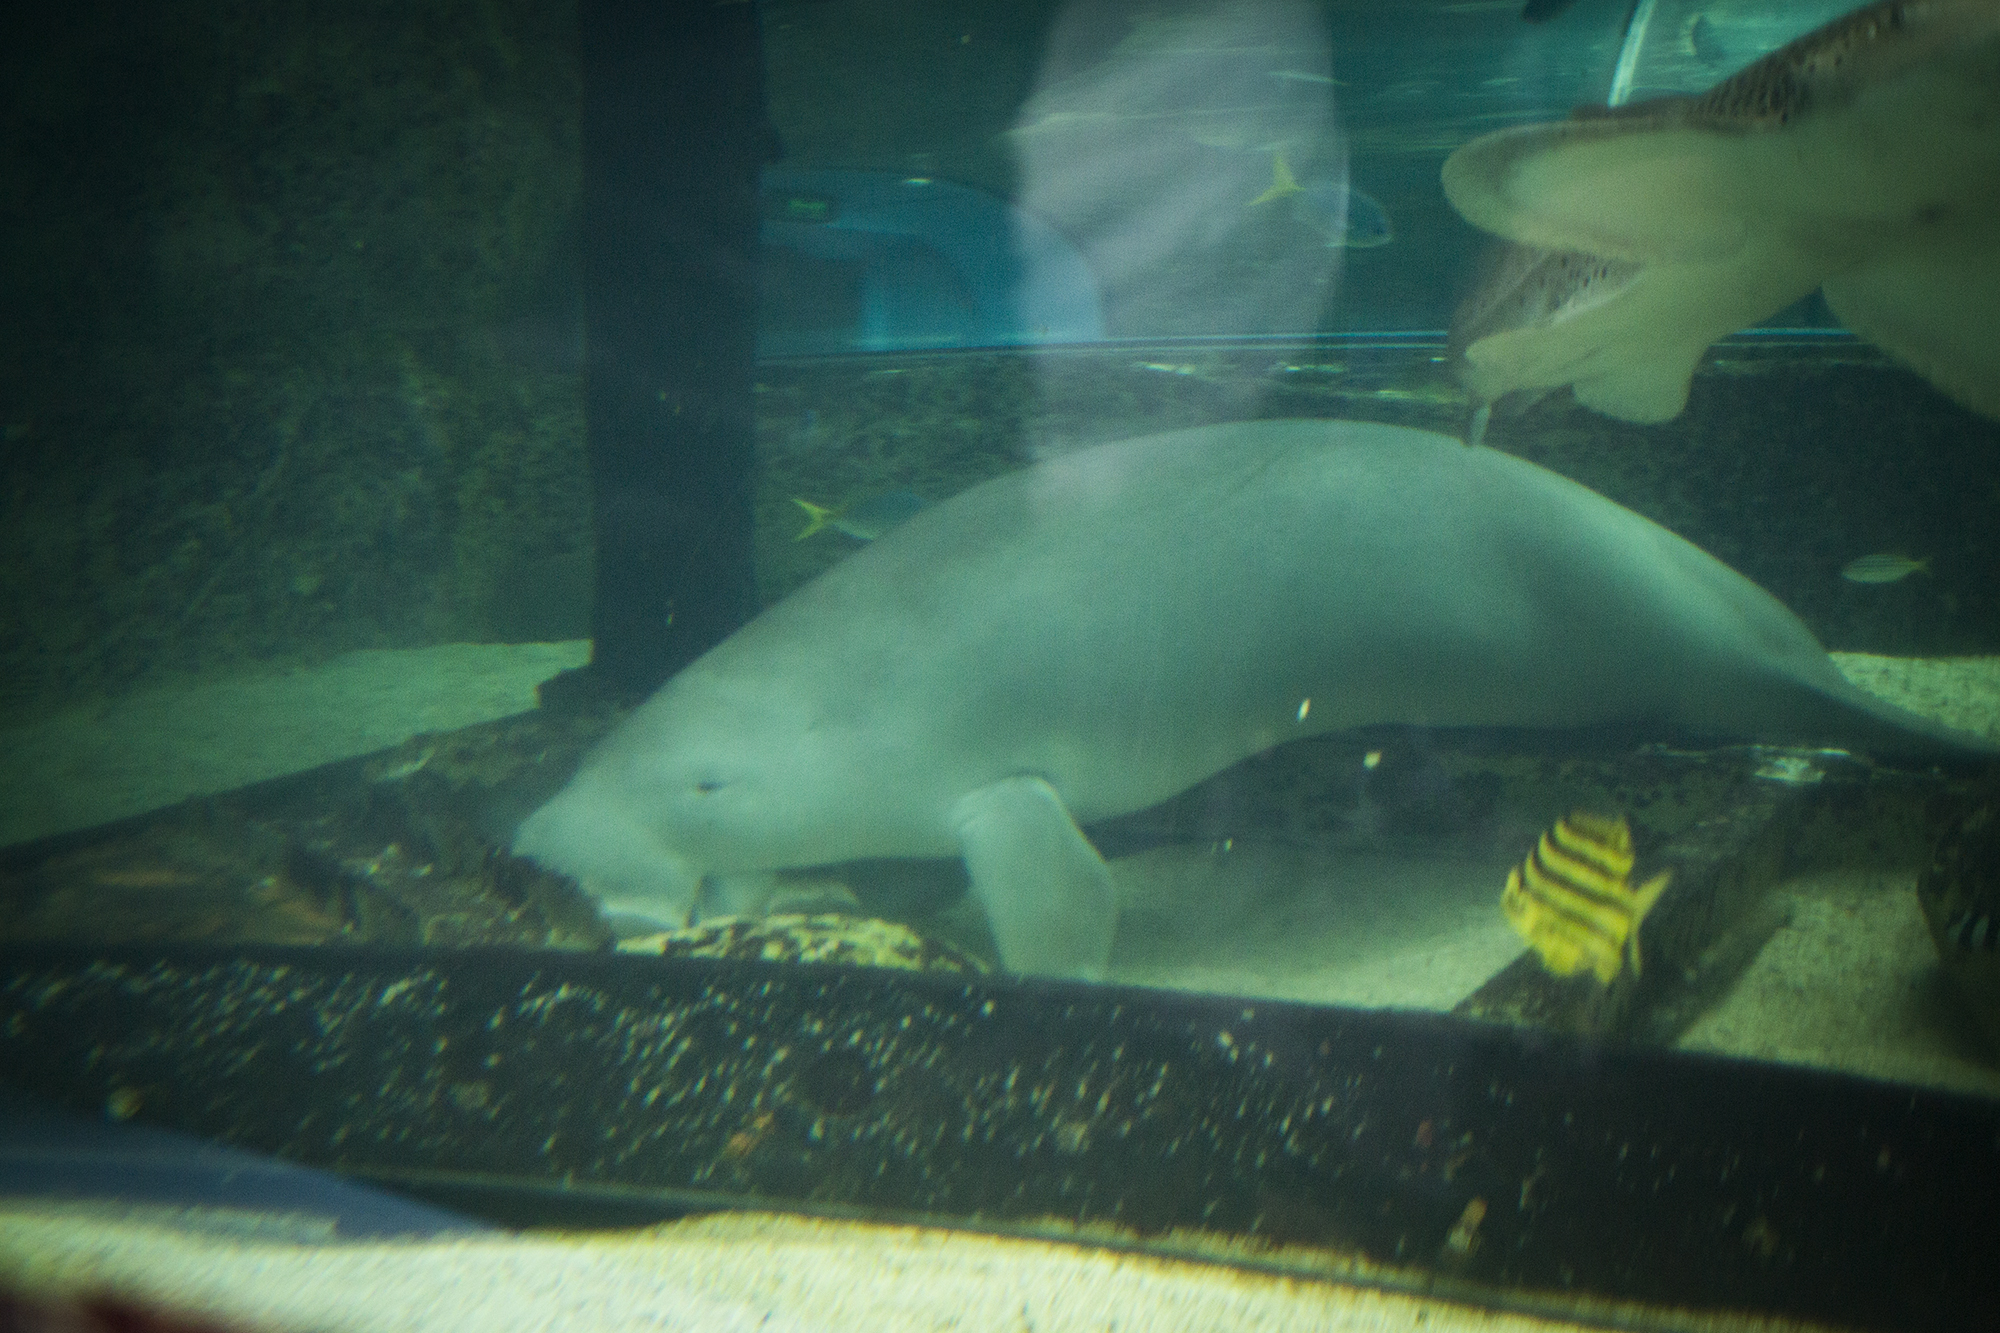 This adorable dugong's name is Pig